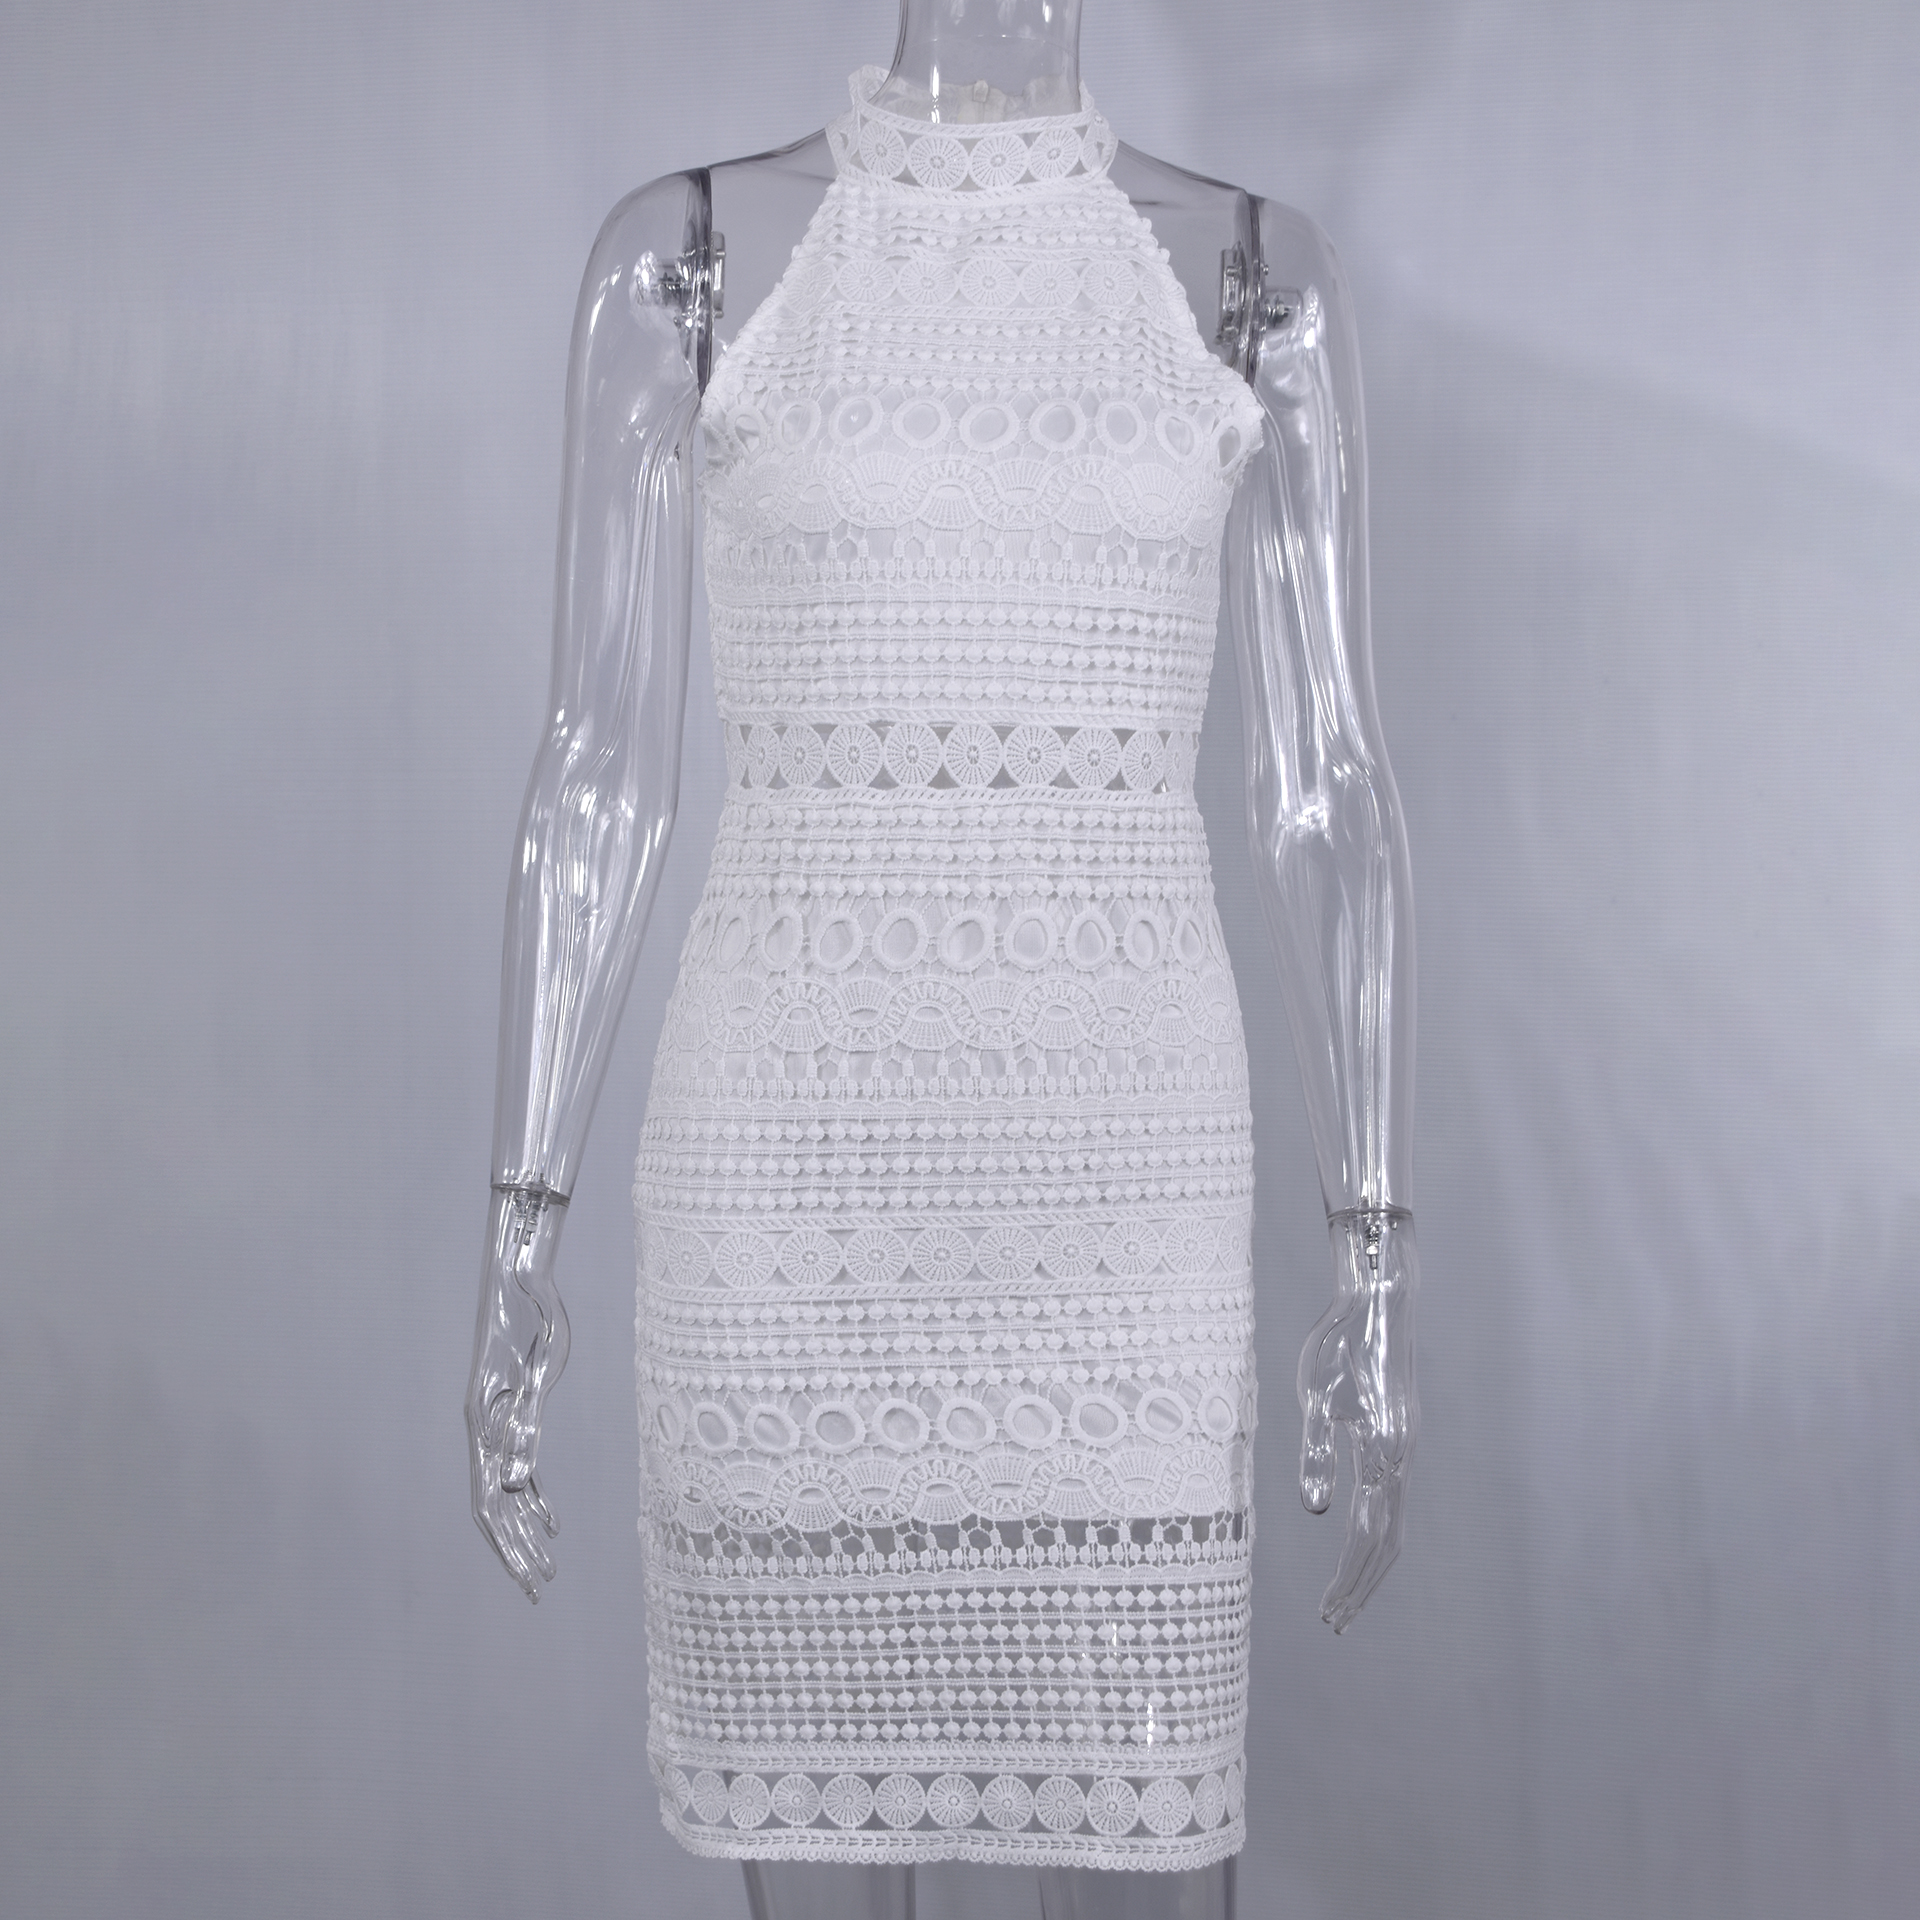 Lossky Sexy Lace Stitching Hollow Out Dress Elegant Women Sleeveless White Summer Chic Short Club Party Clothes Dresses 2020 3